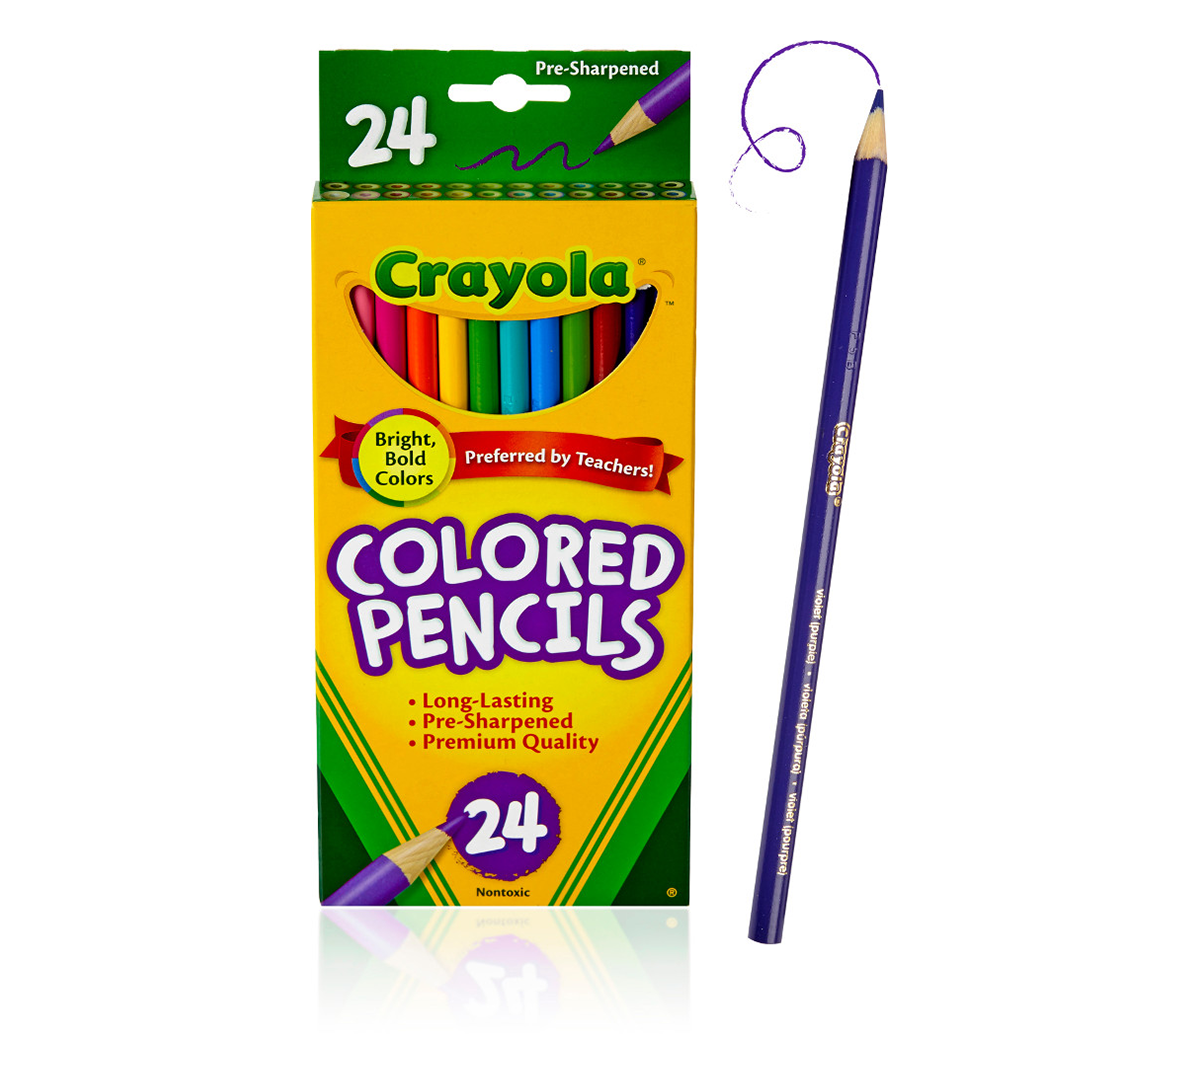 Crayola Colored Pencils, Assorted Colors, Pre-sharpened ...